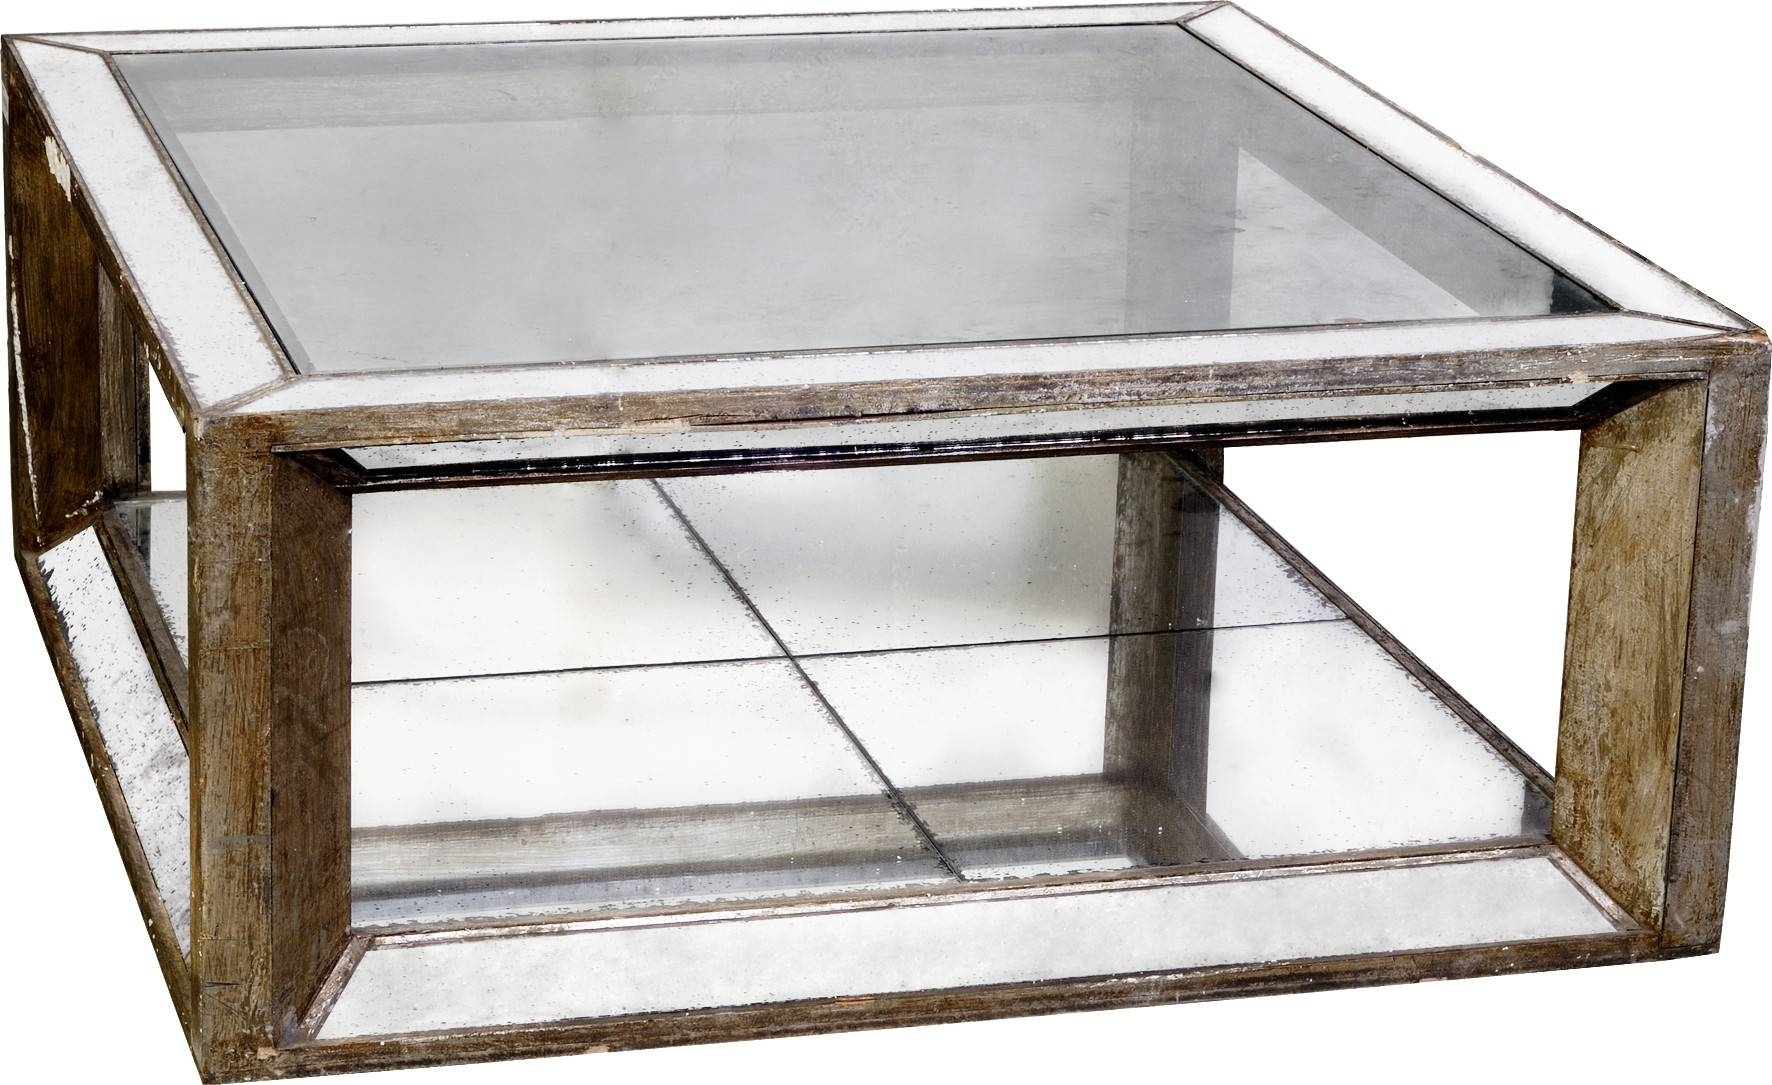 Antique Mirrored Coffee Table Mirror Top S313868451368926296 P211 intended for Oval Mirrored Coffee Tables (Image 1 of 30)